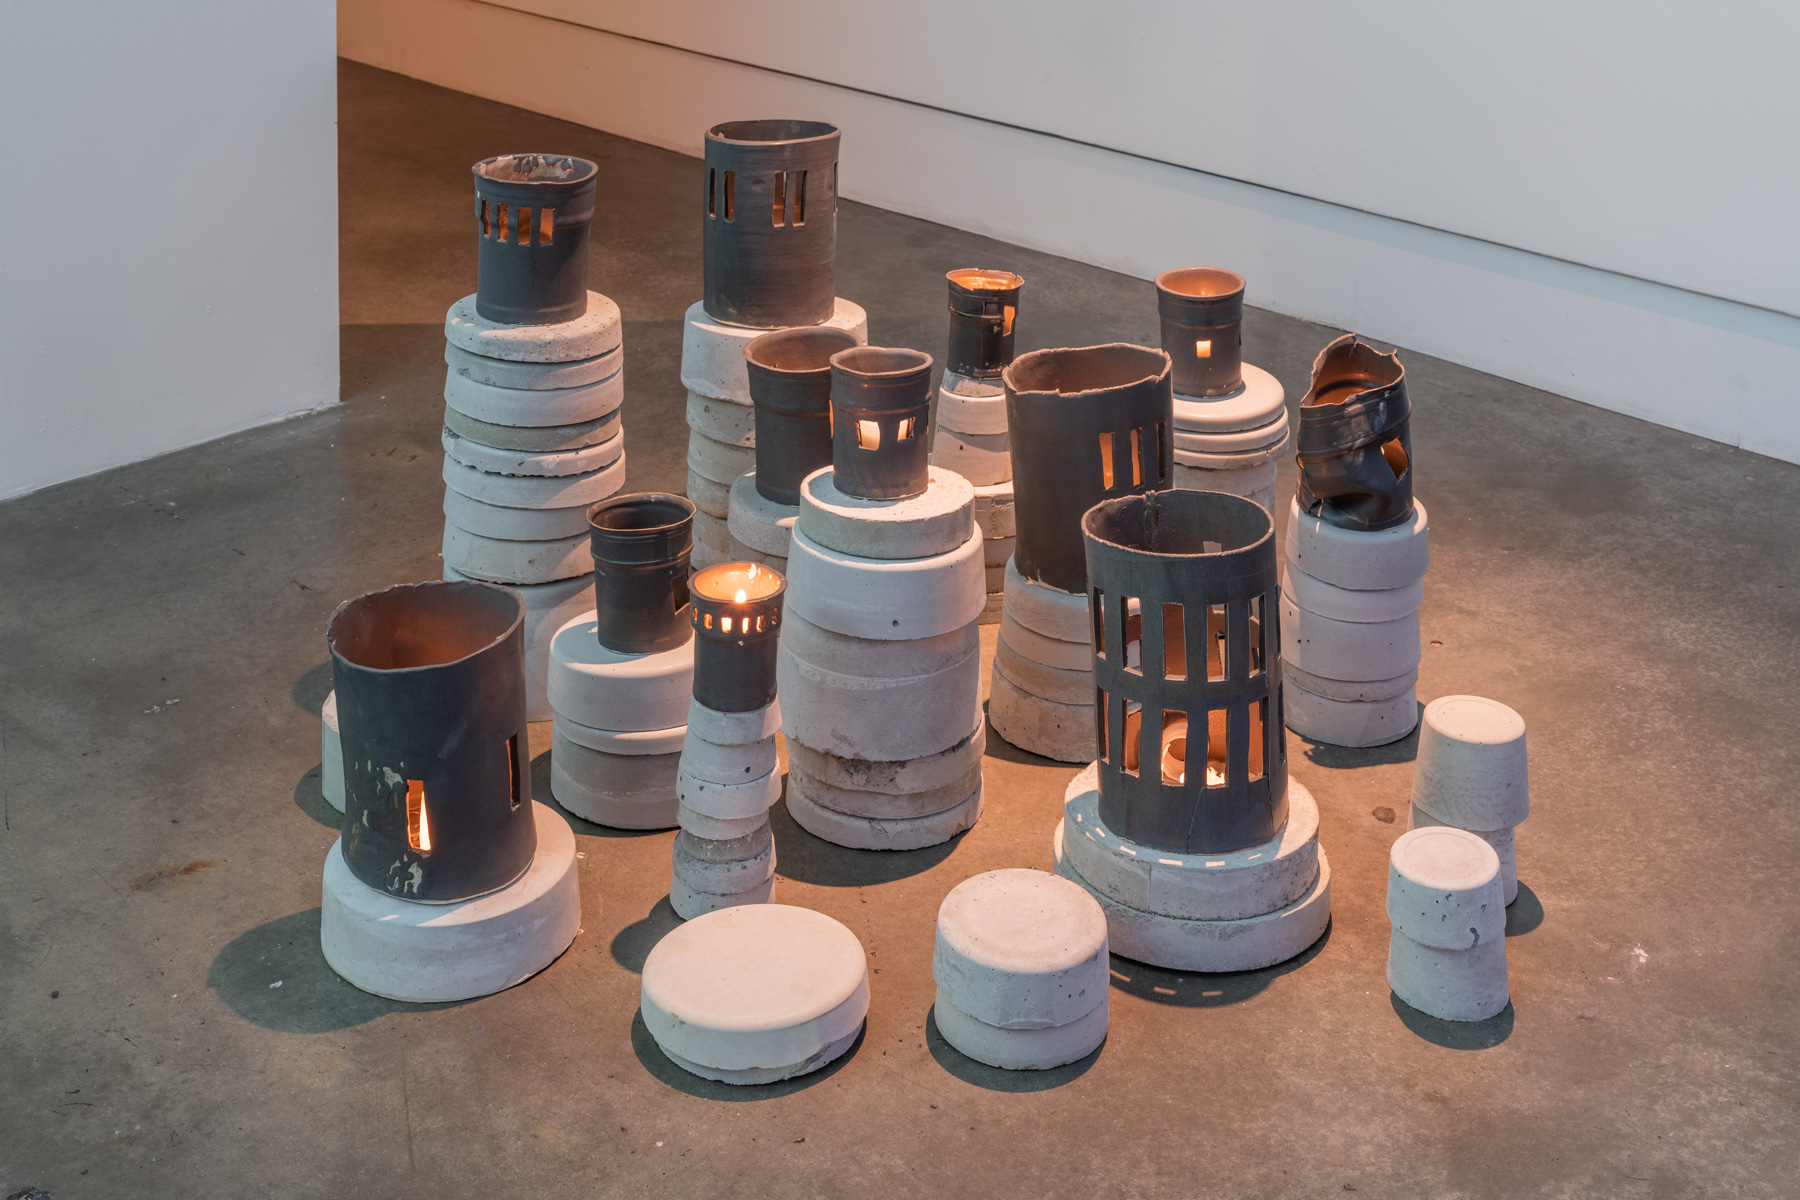 Untitled (Towers), suite of 12 with cement pillars , 2019  Porcelain, Stoneware, Cement  The ceramic and cement towers (lanterns) draw on the history of institutional architecture, industrialized violence, and youth carceral geographies to think through growth and development. The lanterns are fashioned in panopticon shapes that echo a design common to U.S. prison architecture, and display the shape of the stark windows of the youth detention center that Paz documented in the adjacent film. As a whole, they reflect the occlusion and refracting of light to this controlled environment.   The ceramic portions of each are held atop cement pillars mixed from a northwest cement company regularly employed to construct regional schools, universities, and penal structures.